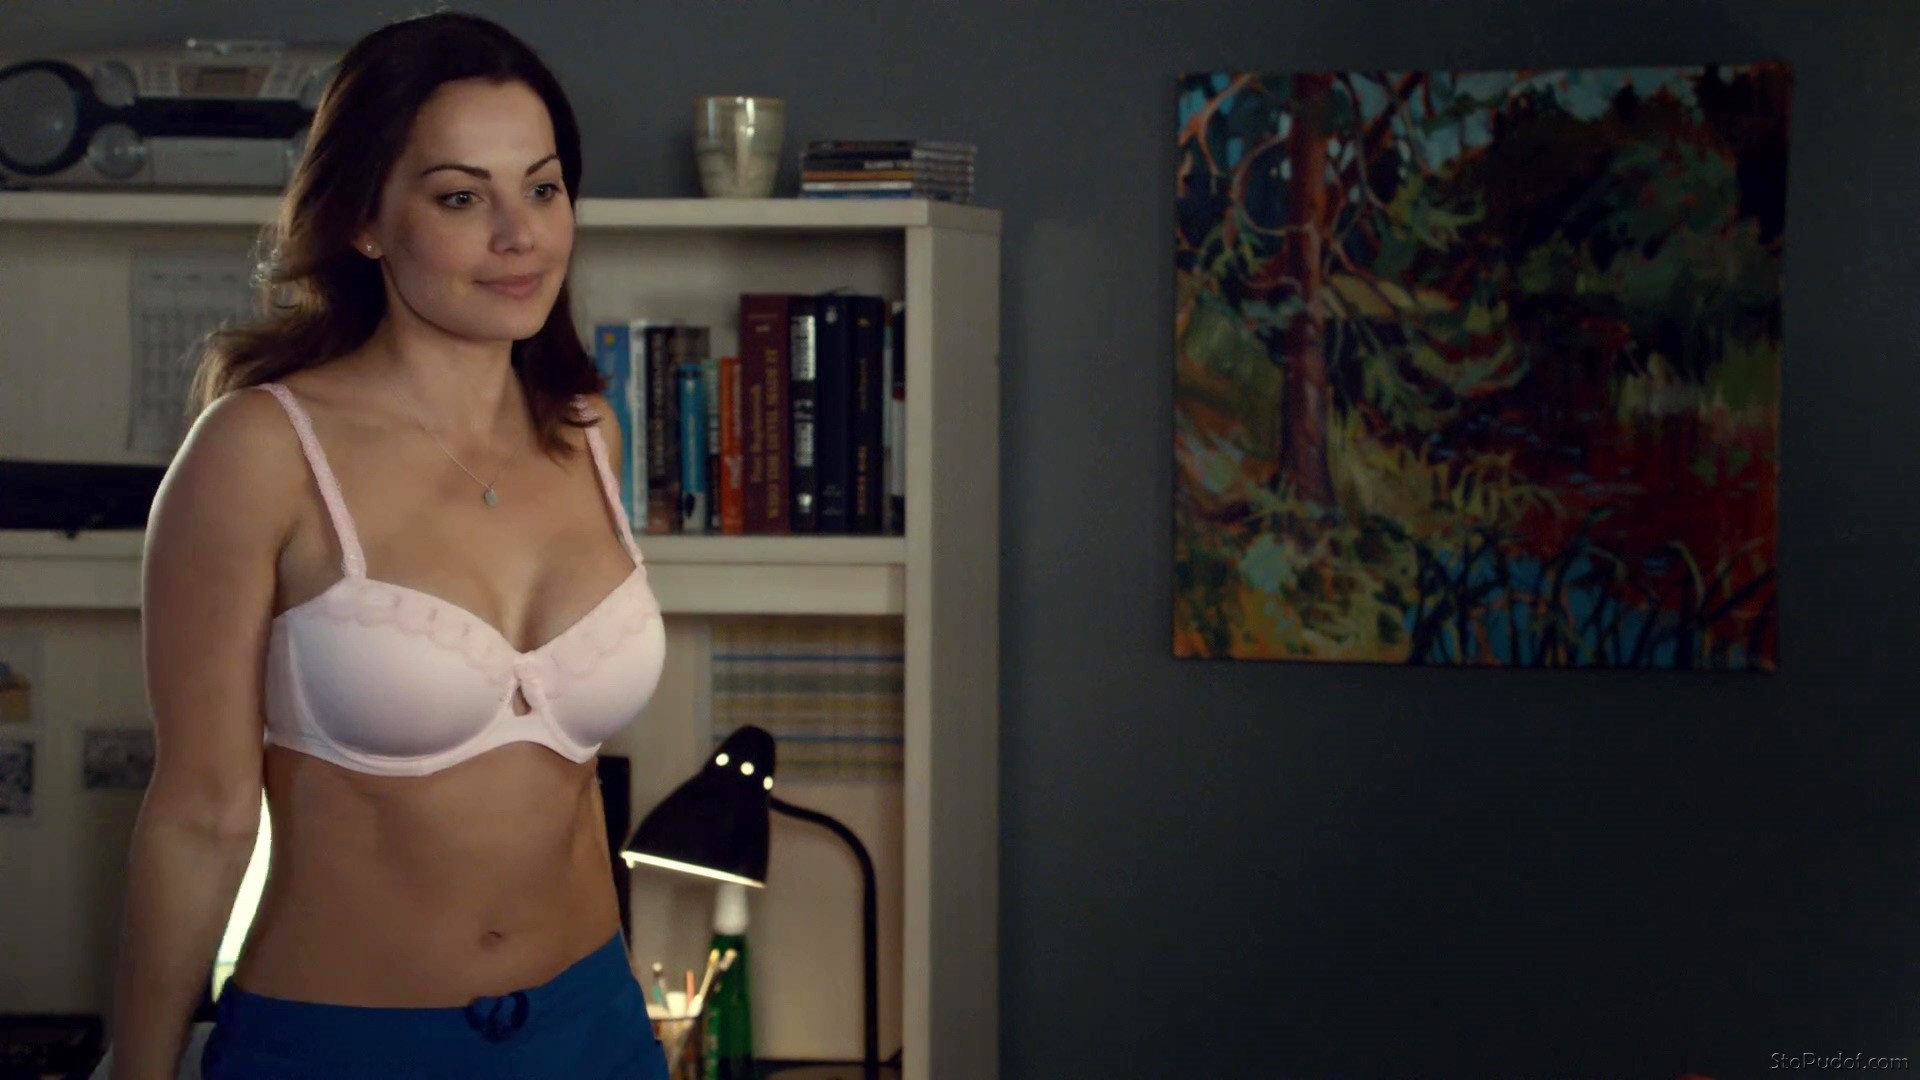 Erica Durance naked pictures icloud - UkPhotoSafari